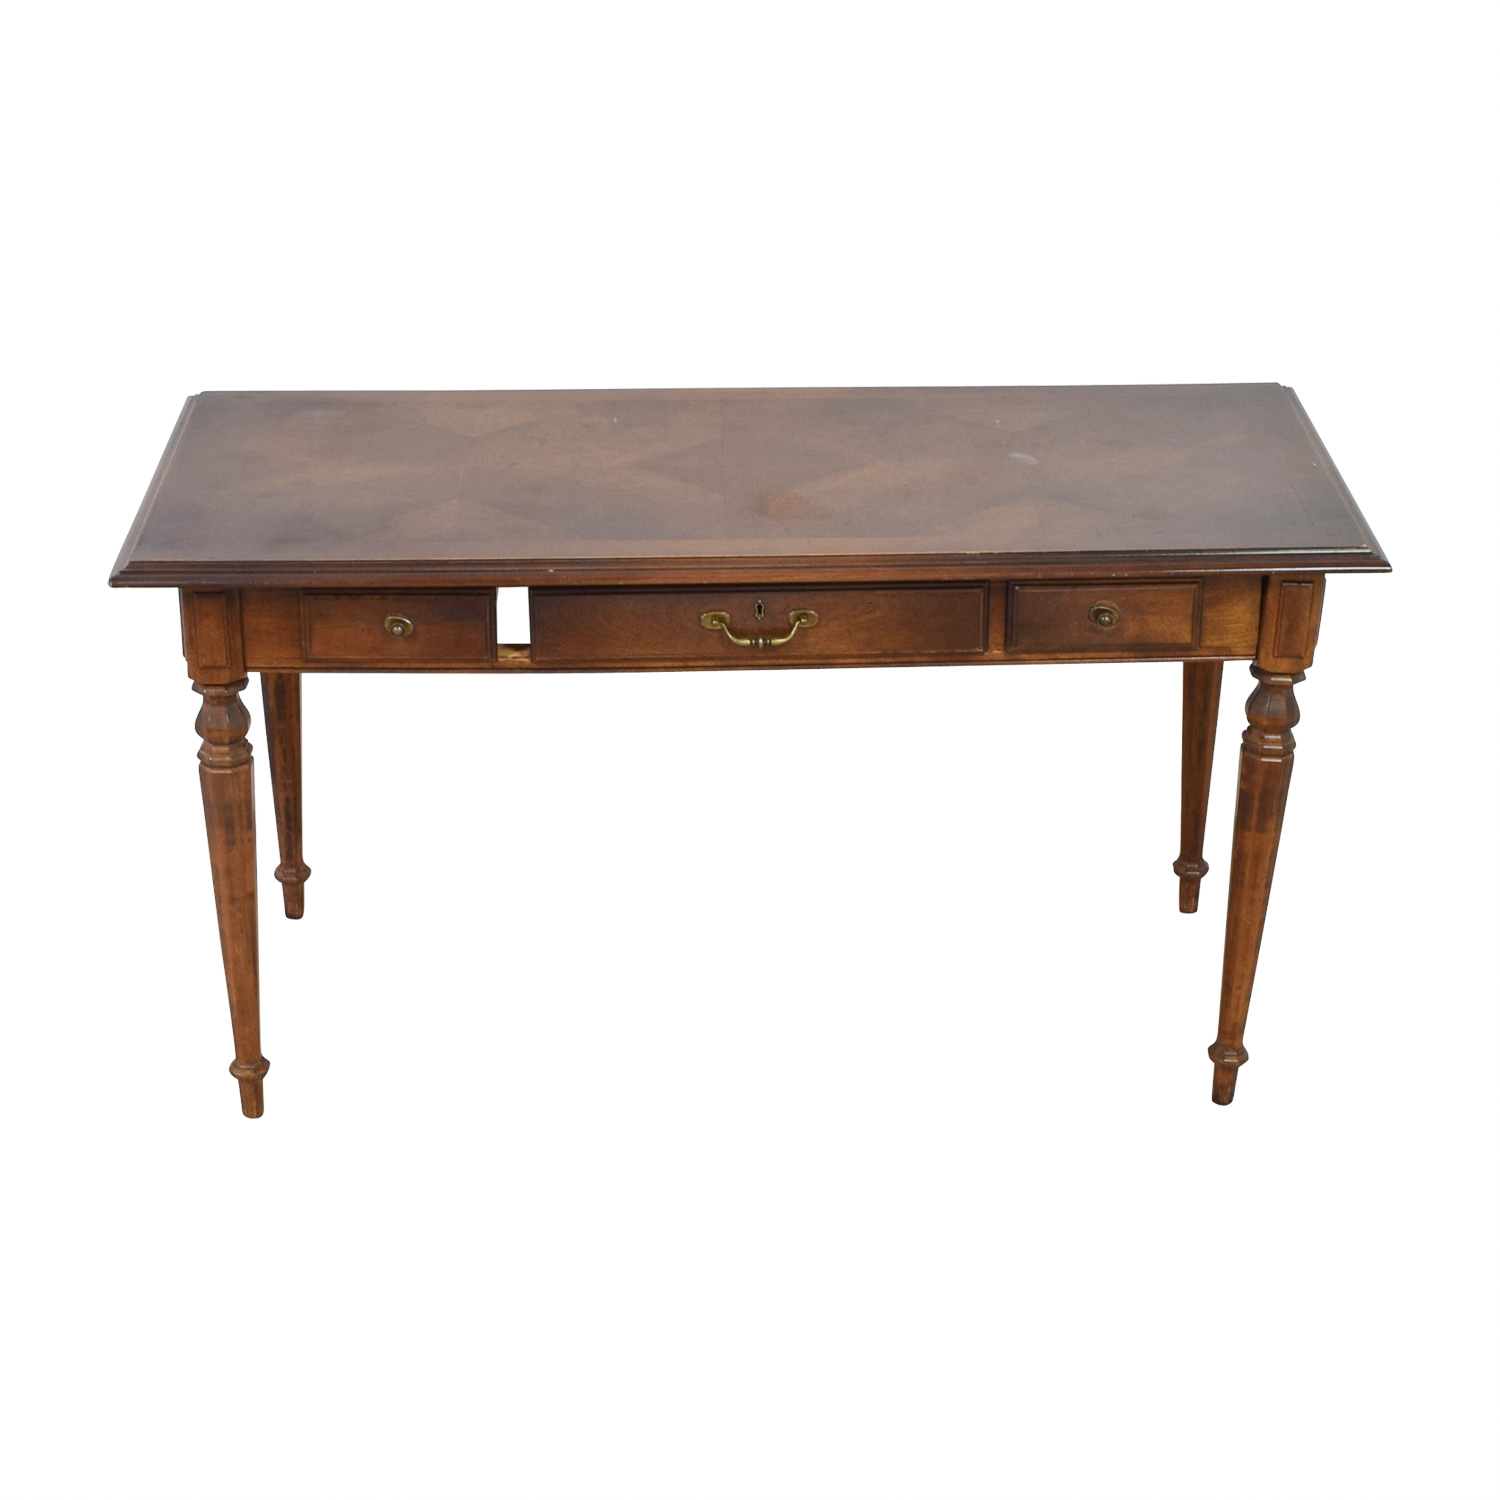 Ethan Allen Three-Drawer Hardwood Desk / Sofas